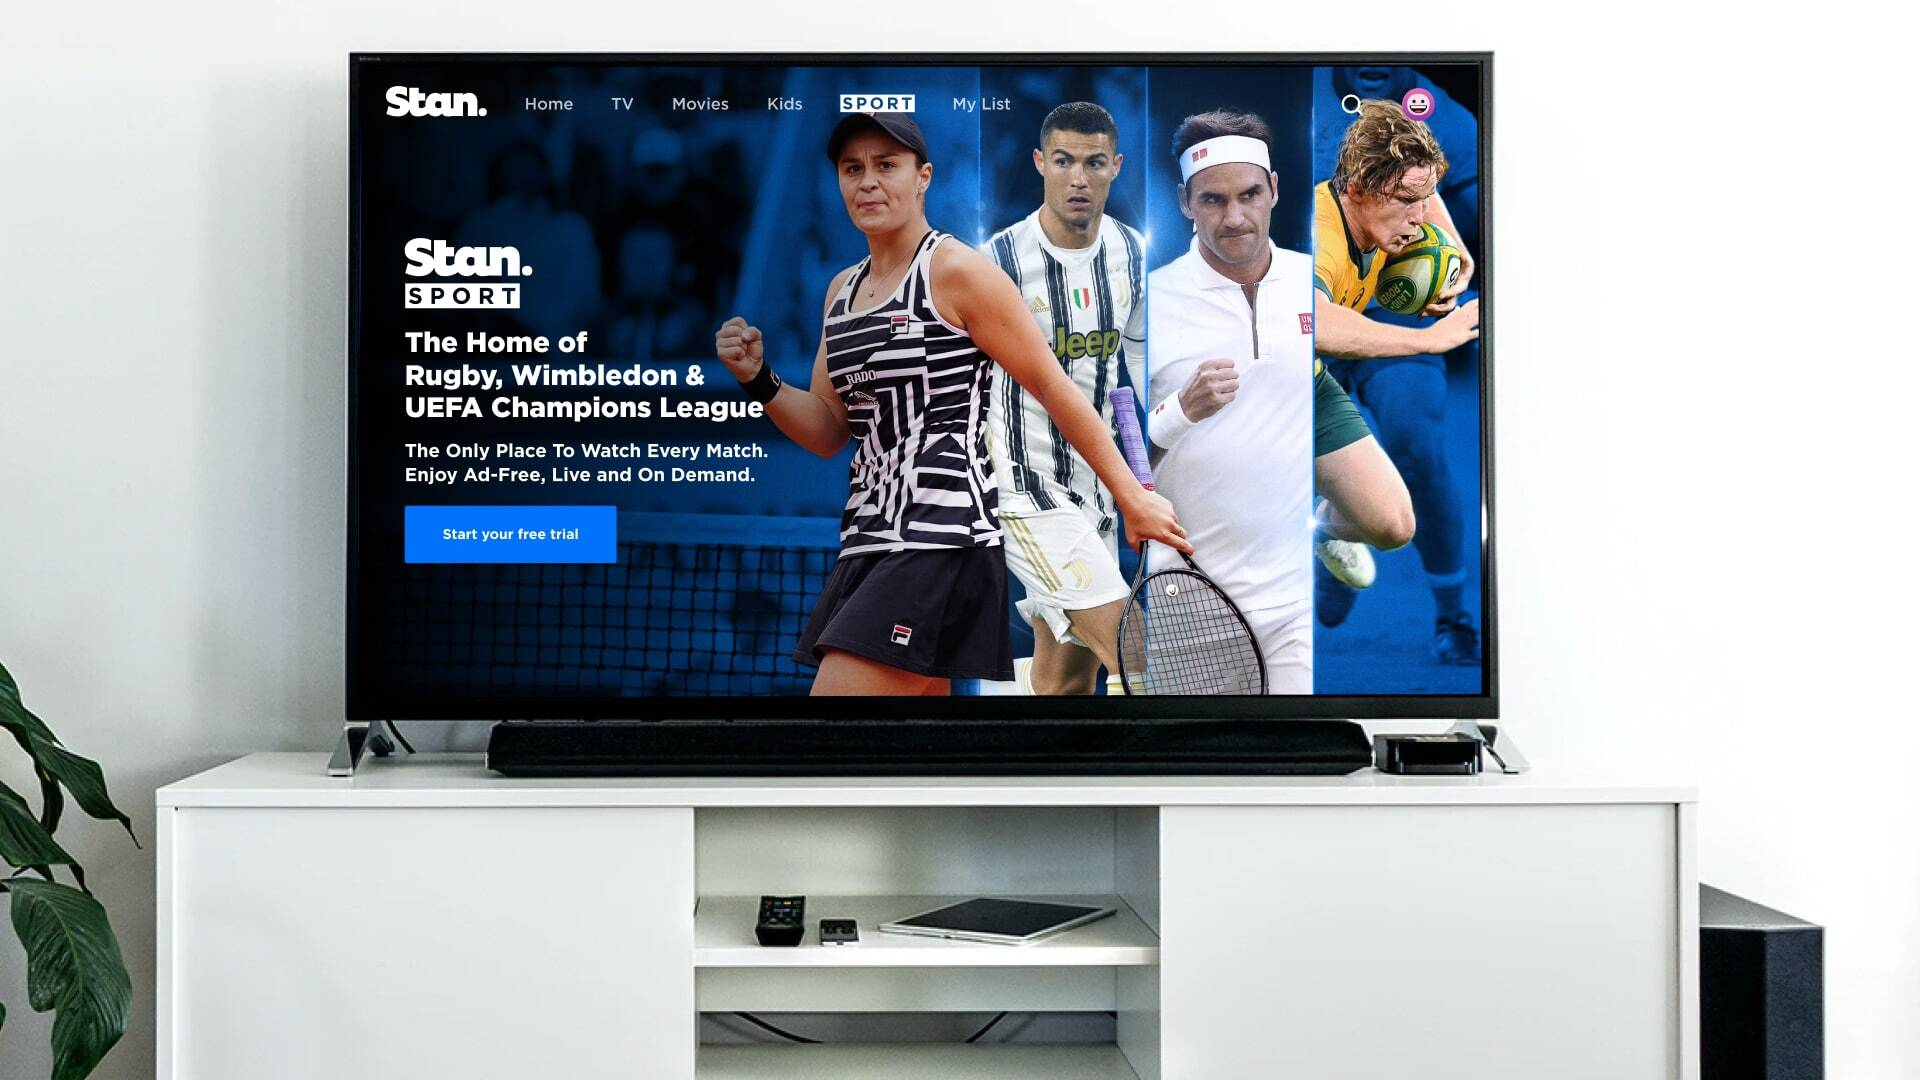 Stan Sport is the Home of Rugby, Wimbledon & UEFA Champions League.